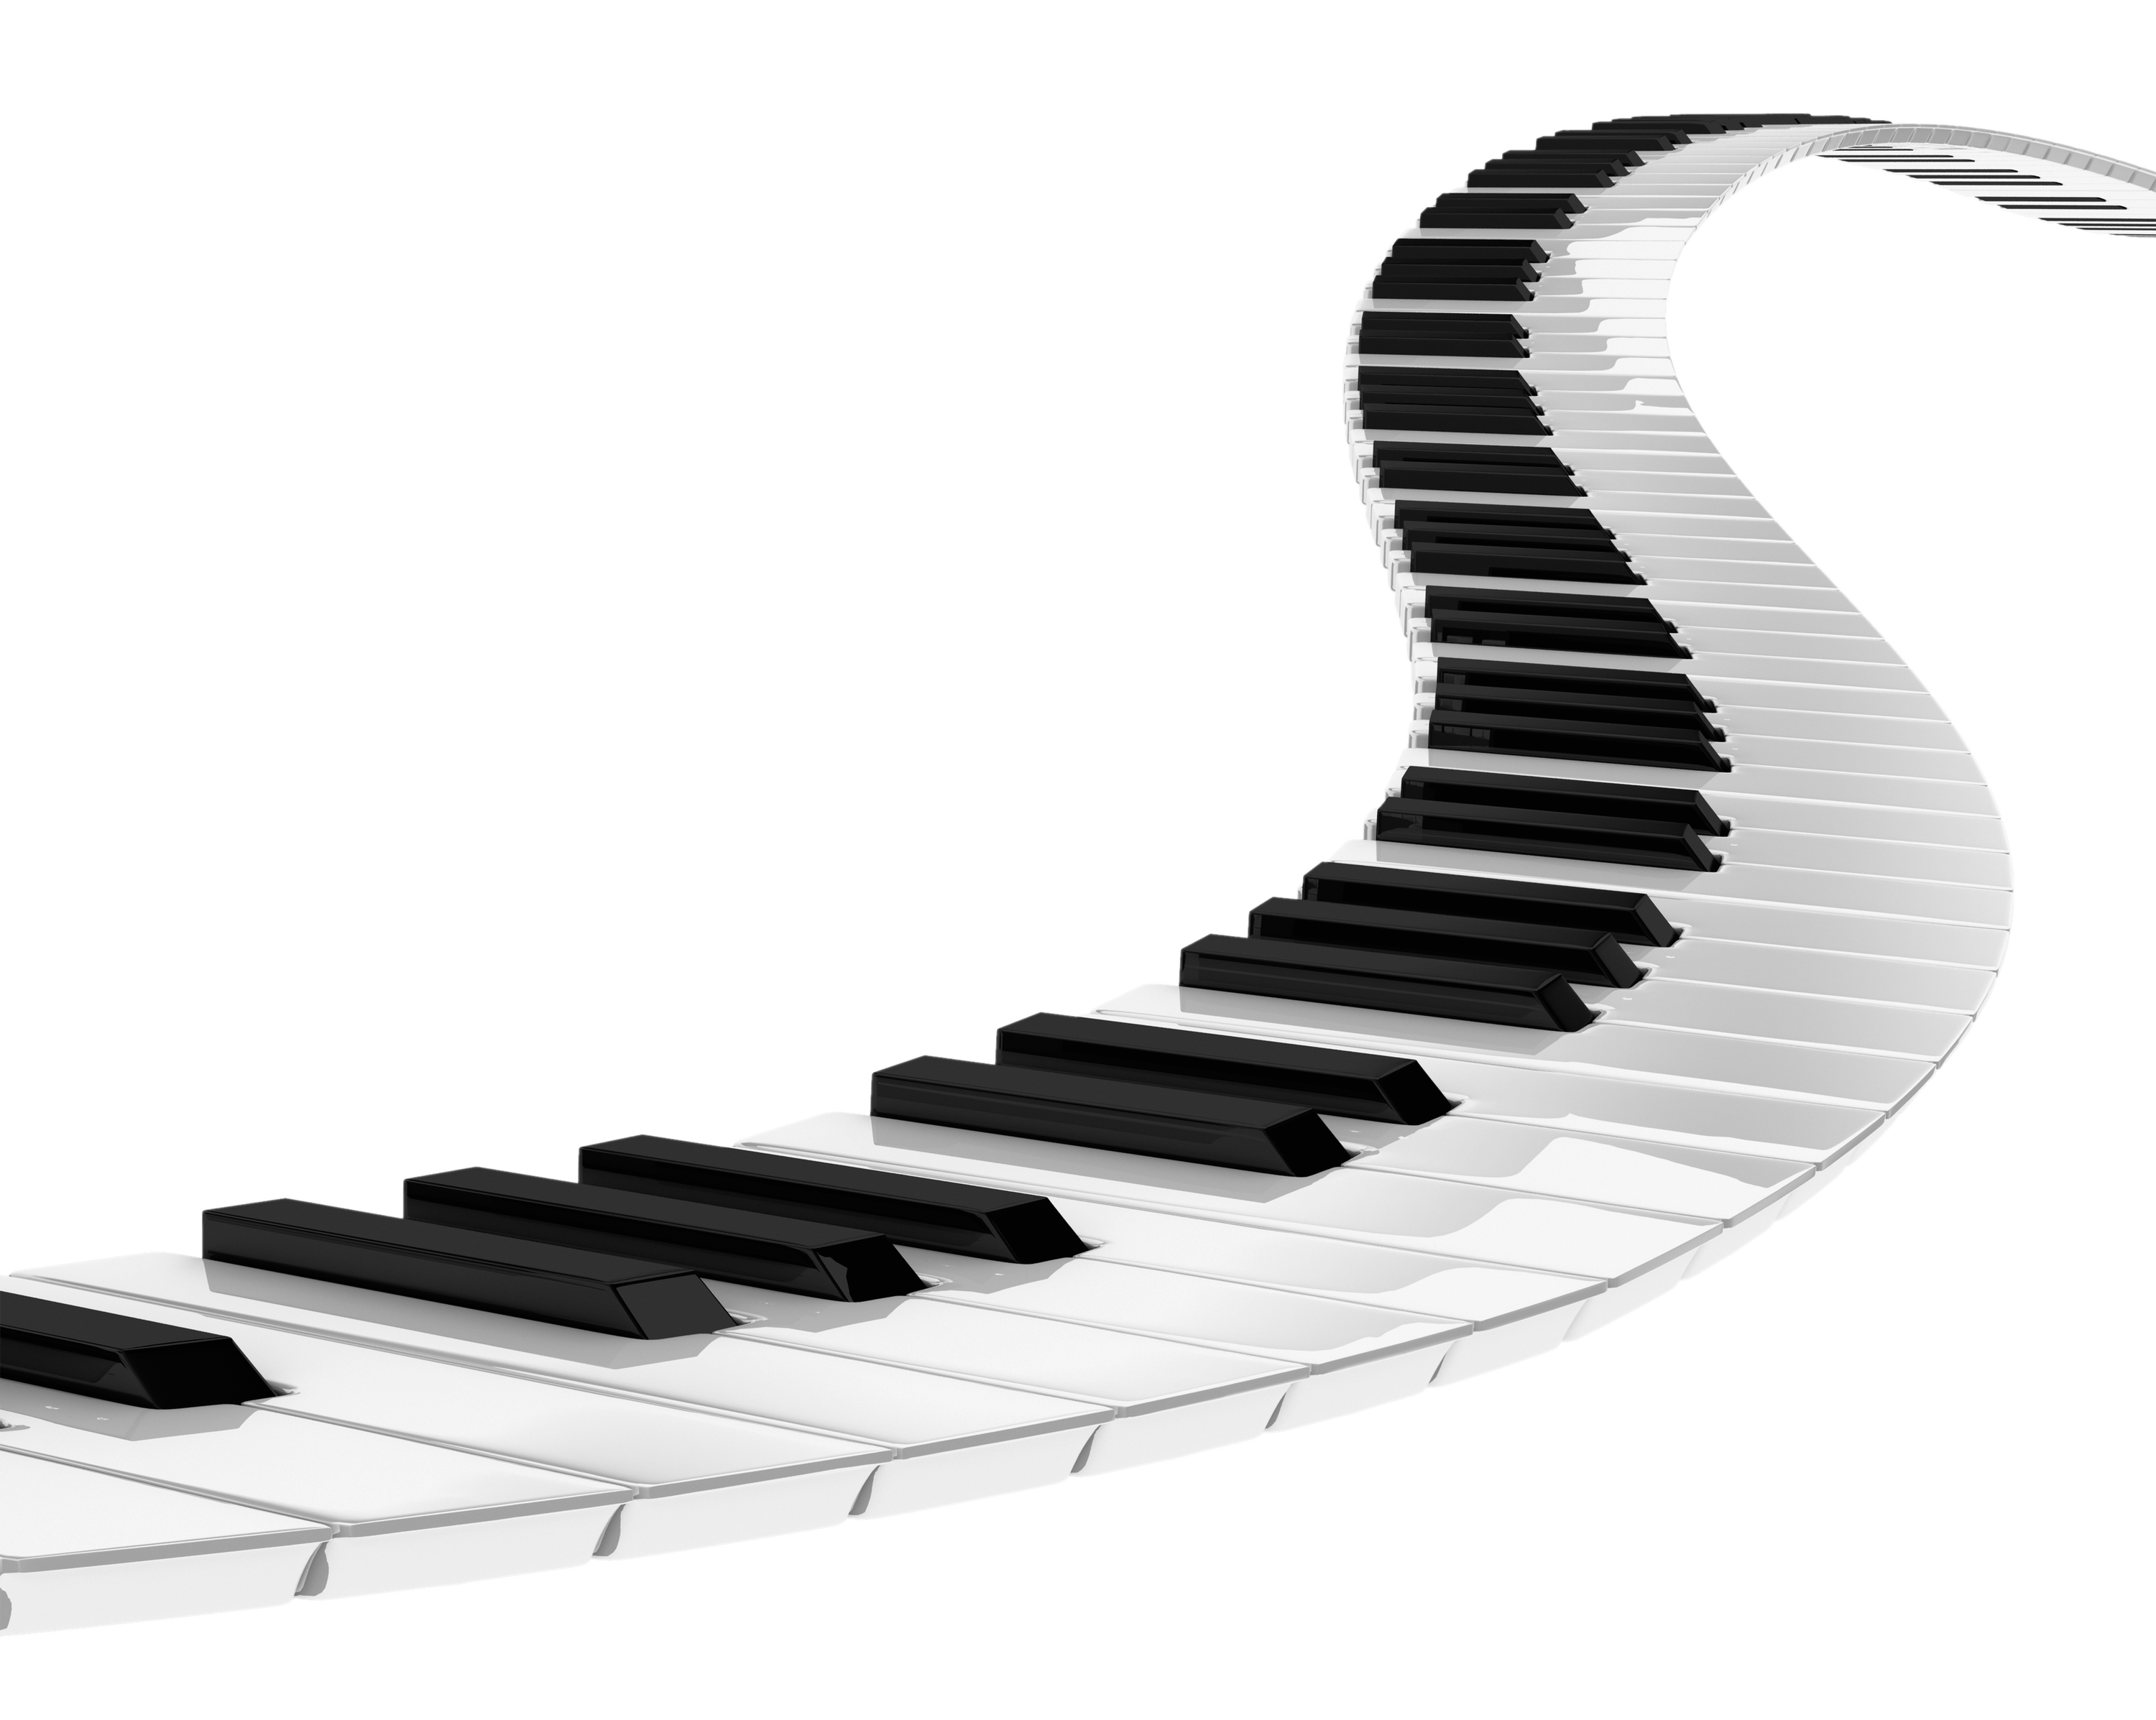 Transparent pianos. Piano spiral png stickpng